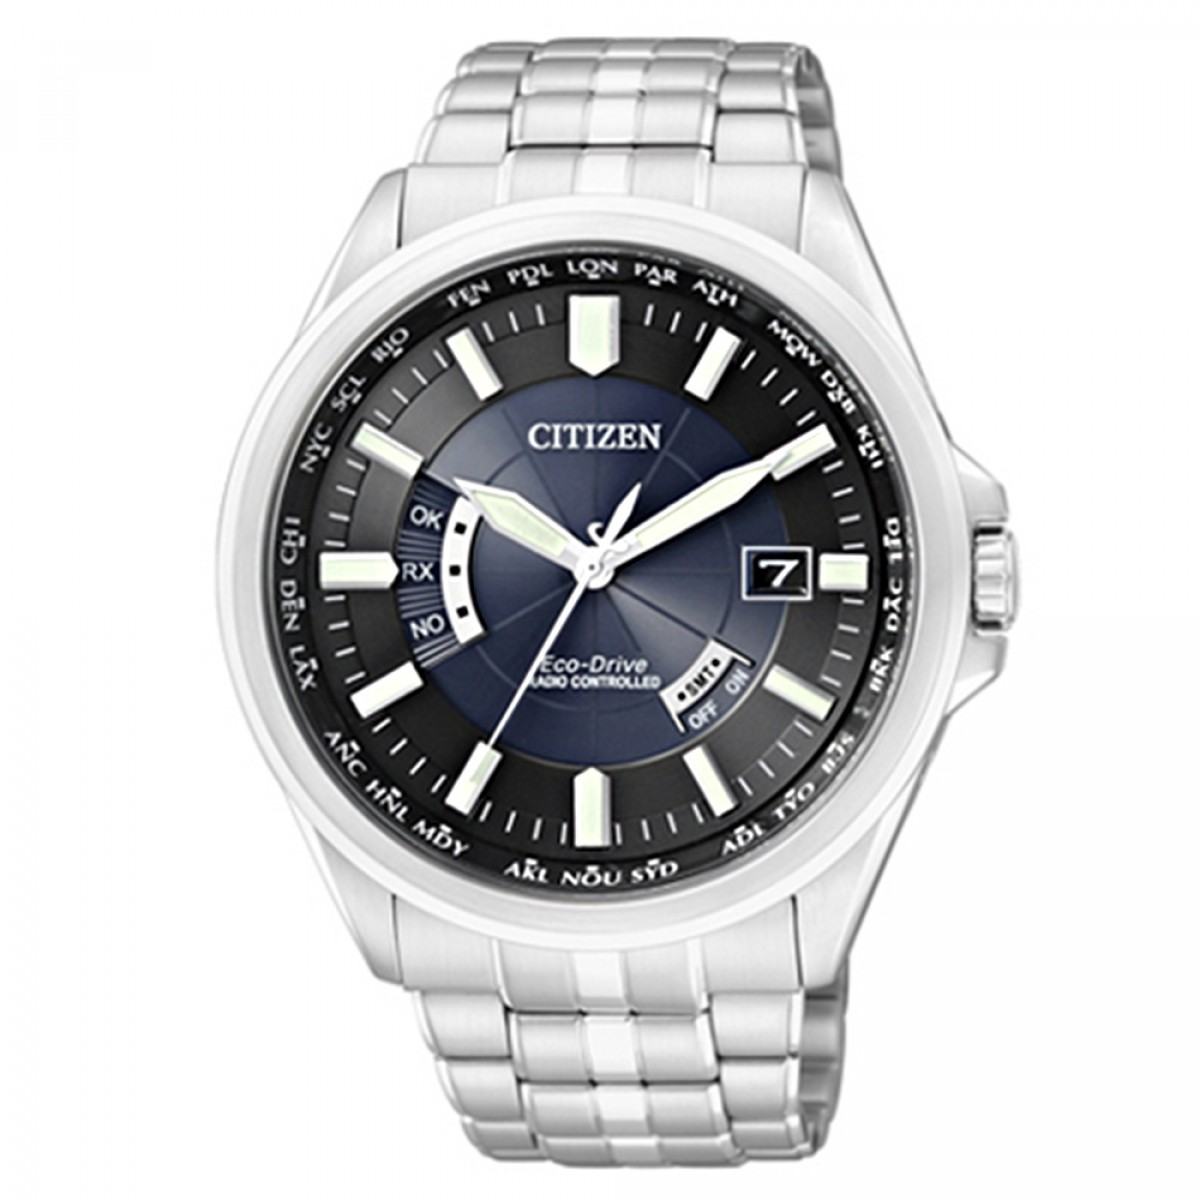 8a149a9b332 Relógio Citizen Eco-Drive Radio Controlled CB0011-51L - Grife Relógios